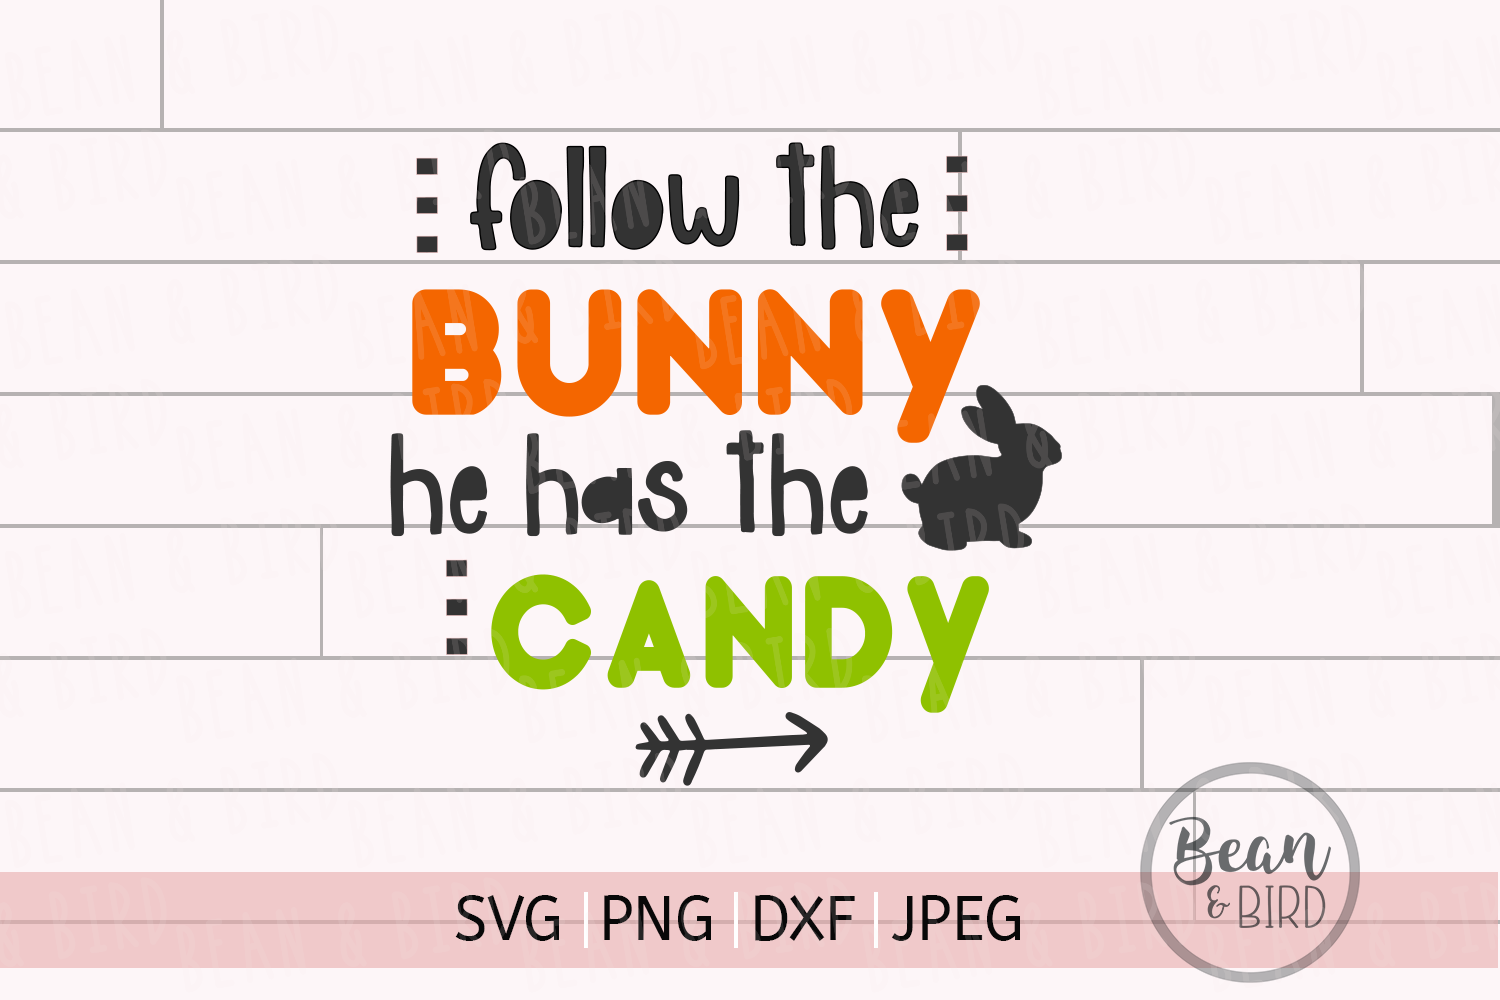 Follow The Bunny Easter Svg Cut File example image 1